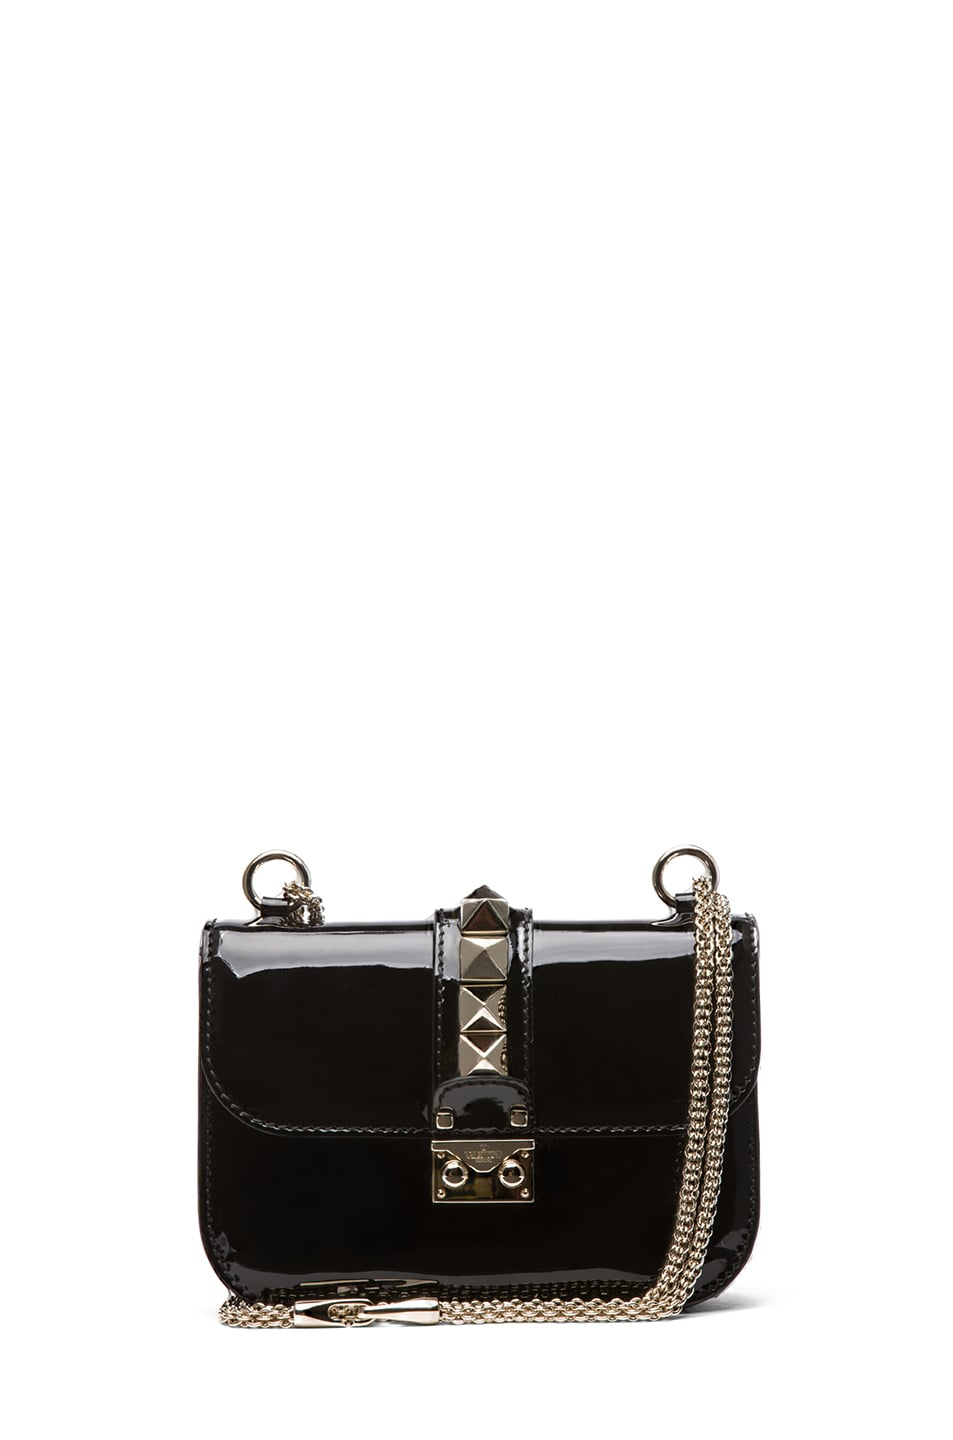 Image 1 of Valentino Small Lock Flap Bag Patent in Black